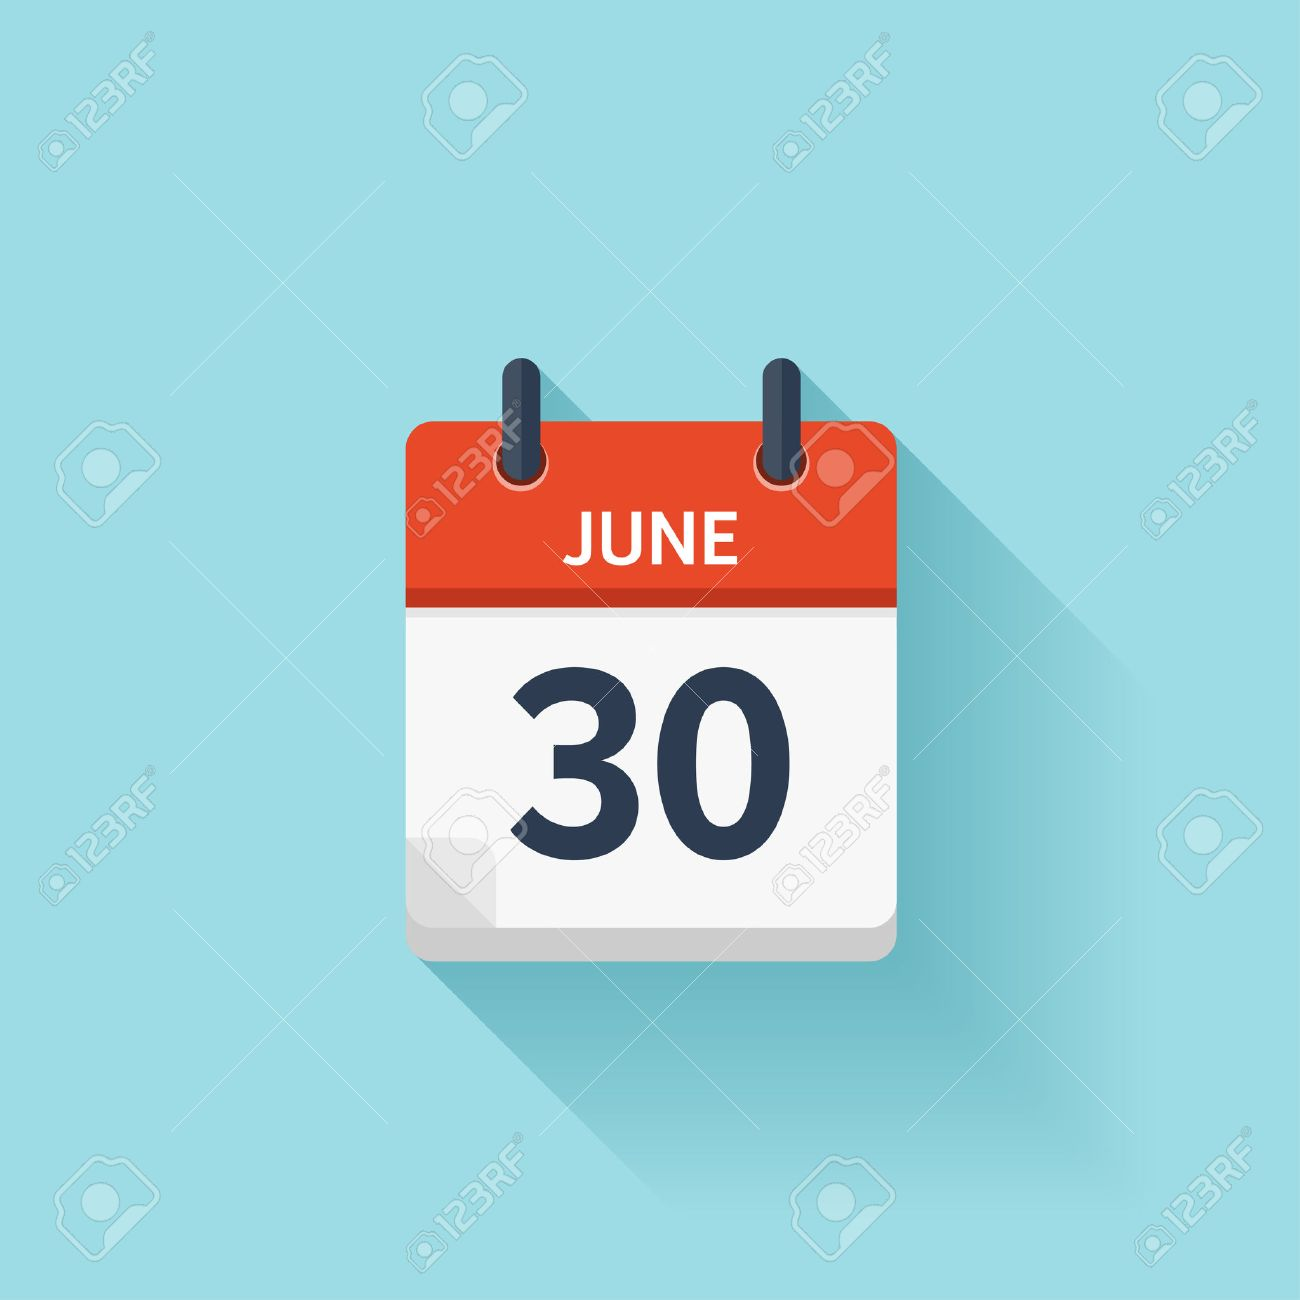 june 30 vector flat daily calendar icon date and time day